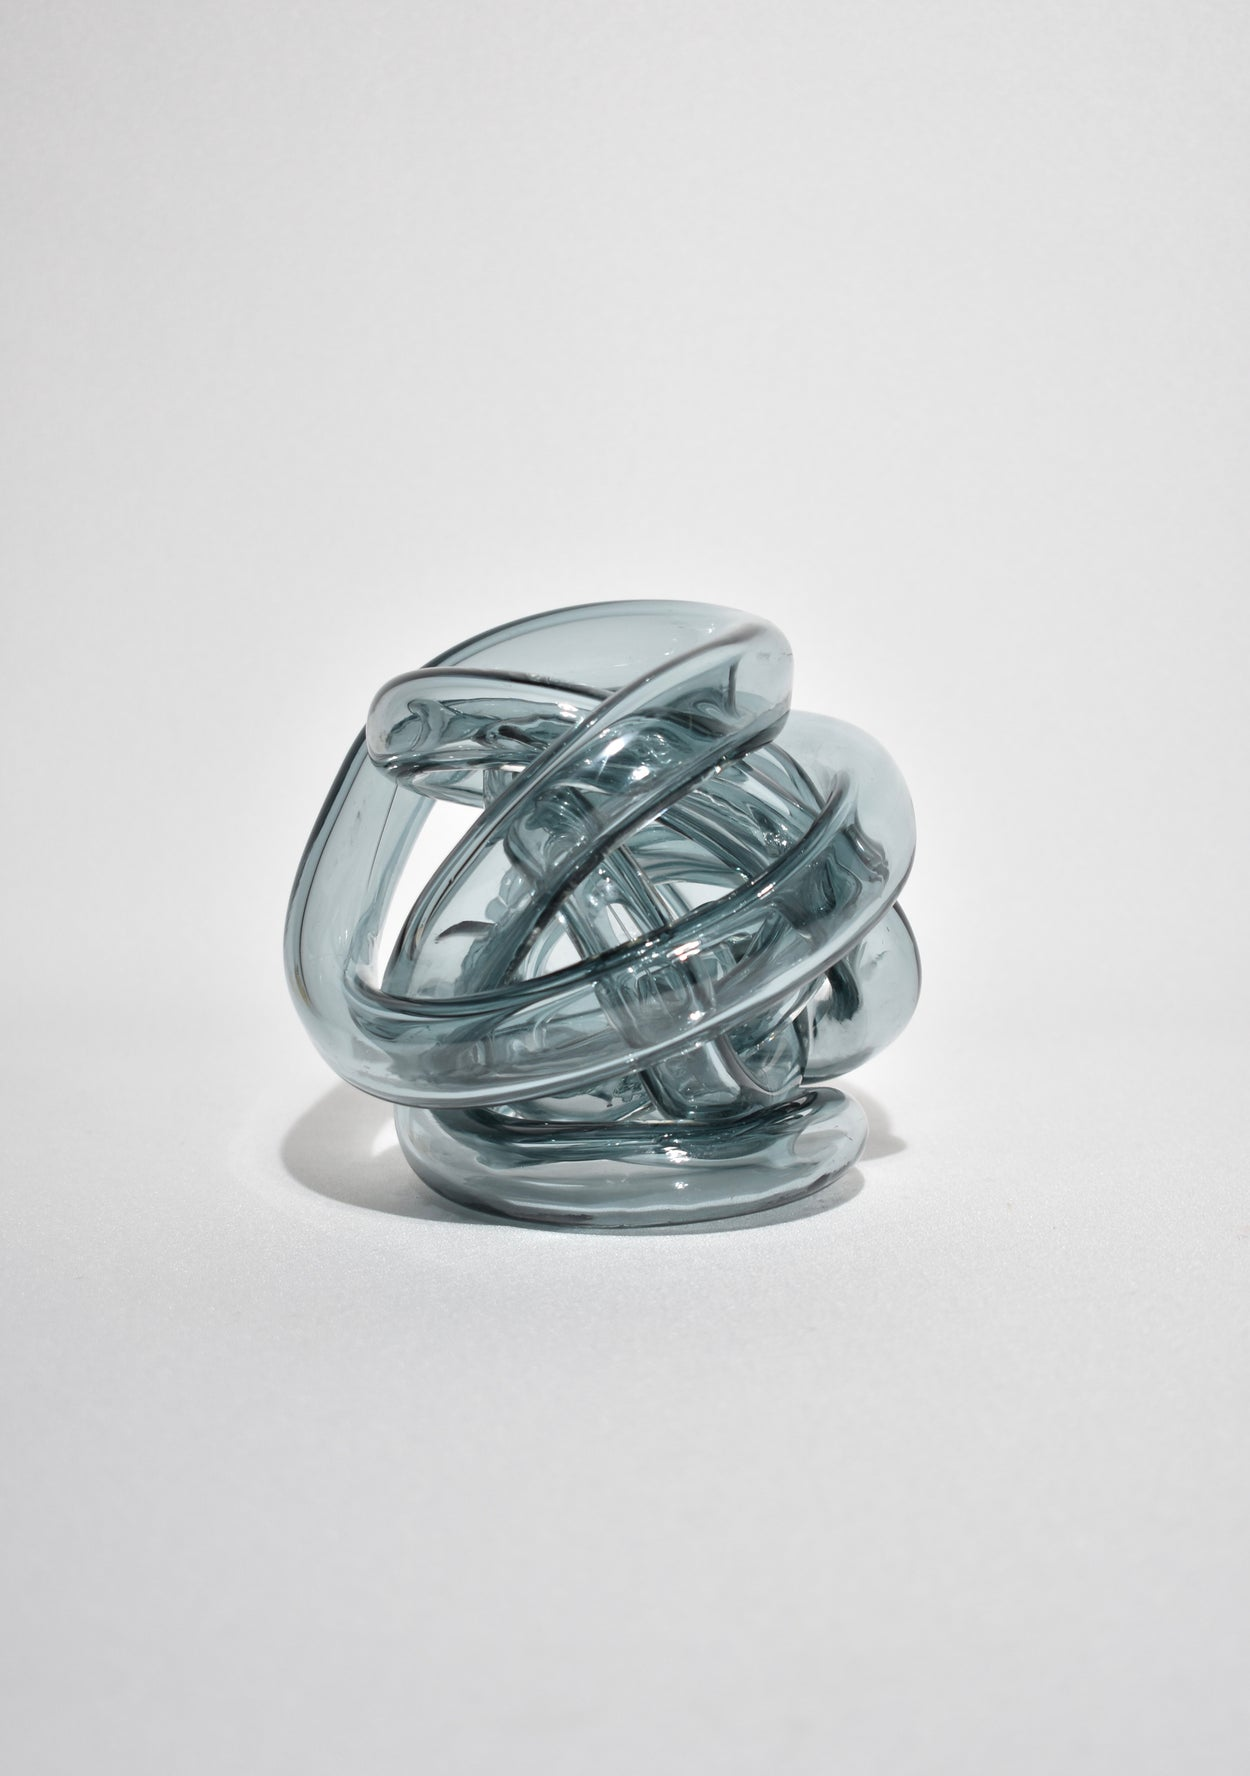 Slate Glass Knot Sculpture